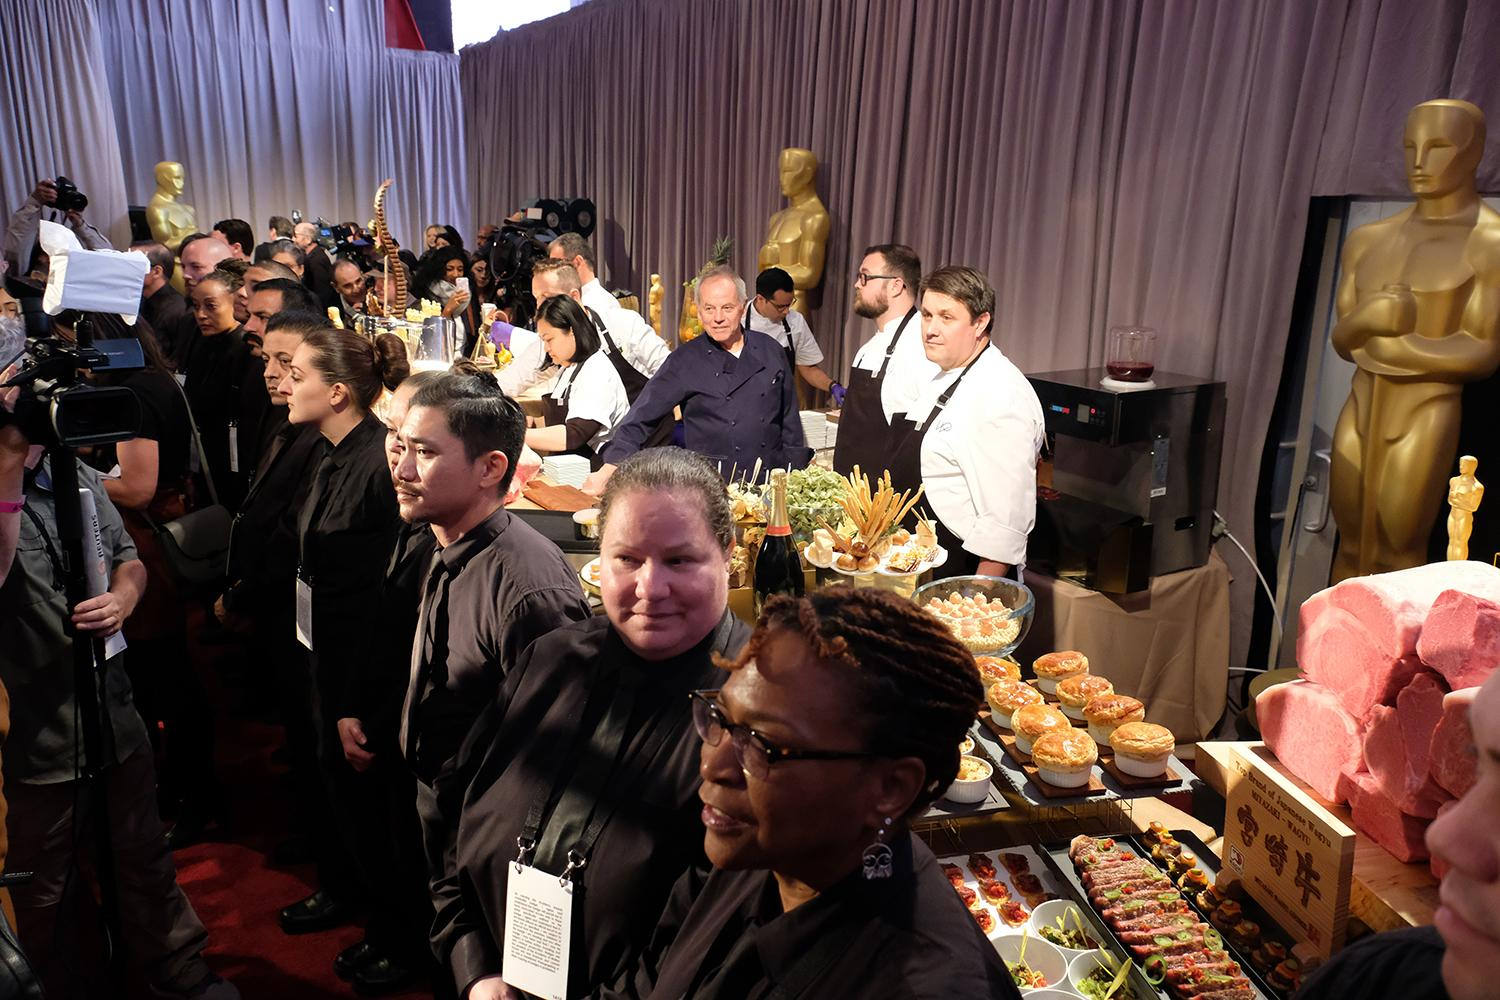 Master chef Wolfgang Puck during the Academy's Governors Ball preview on Thursday, March 1, 2018. The Academy's Governors Ball will be held in the Ray Dolby Ballroom on the top level of the Hollywood & Highland Center®. The 90th Oscars® for outstanding film achievements of 2017 will be presented on Sunday, March 4, 2018 at the Dolby Theatre® in Hollywood, CA and televised live by the ABC Television Network.